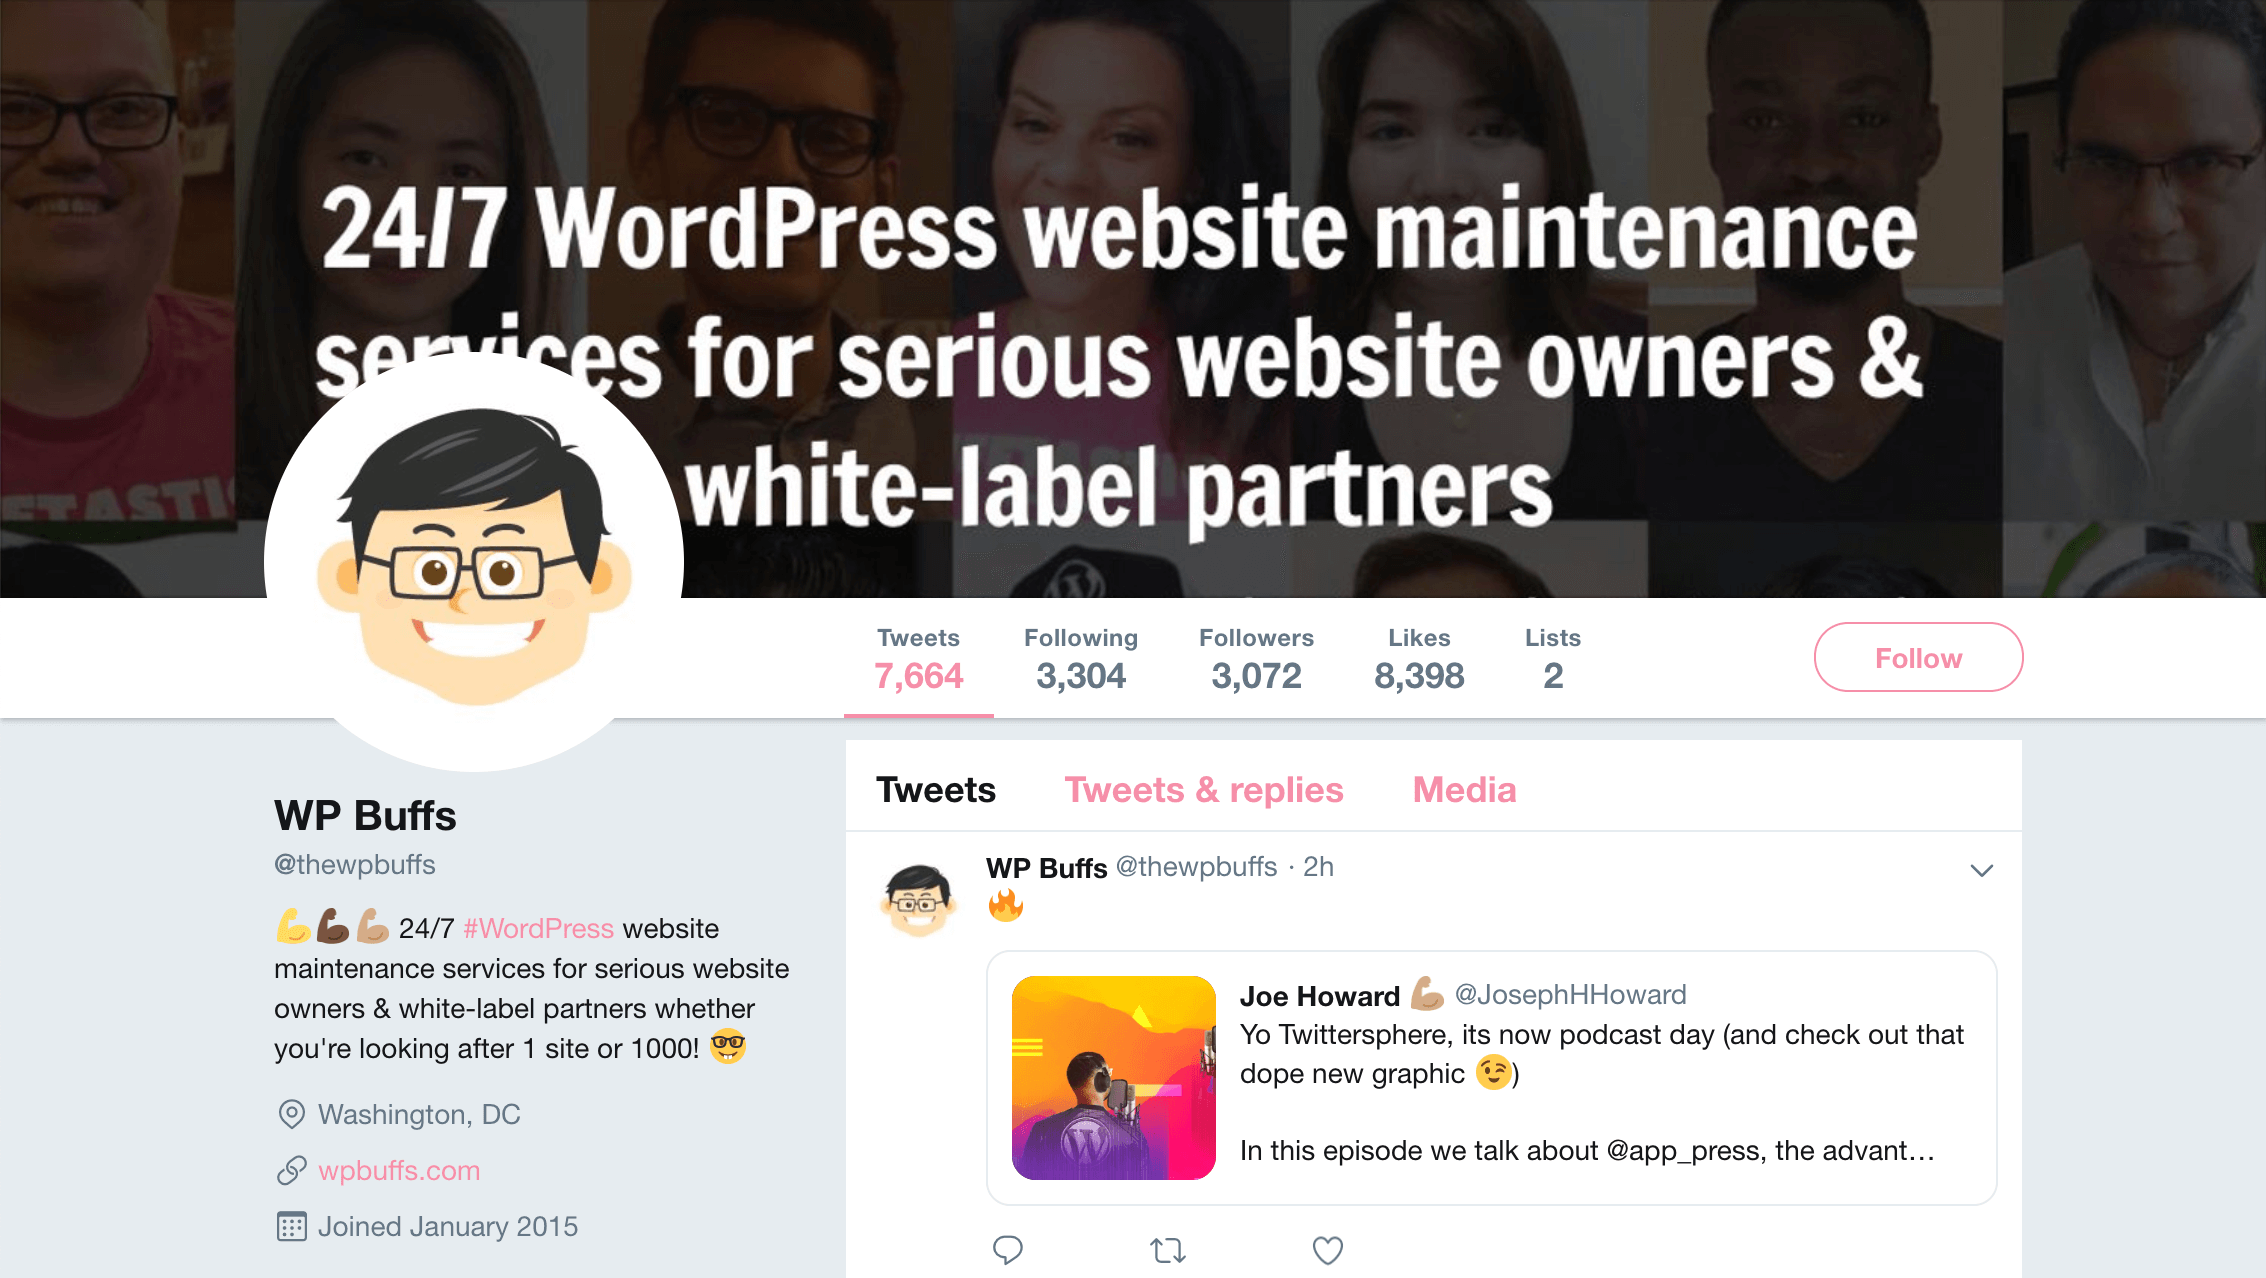 The WP Buffs Twitter account.